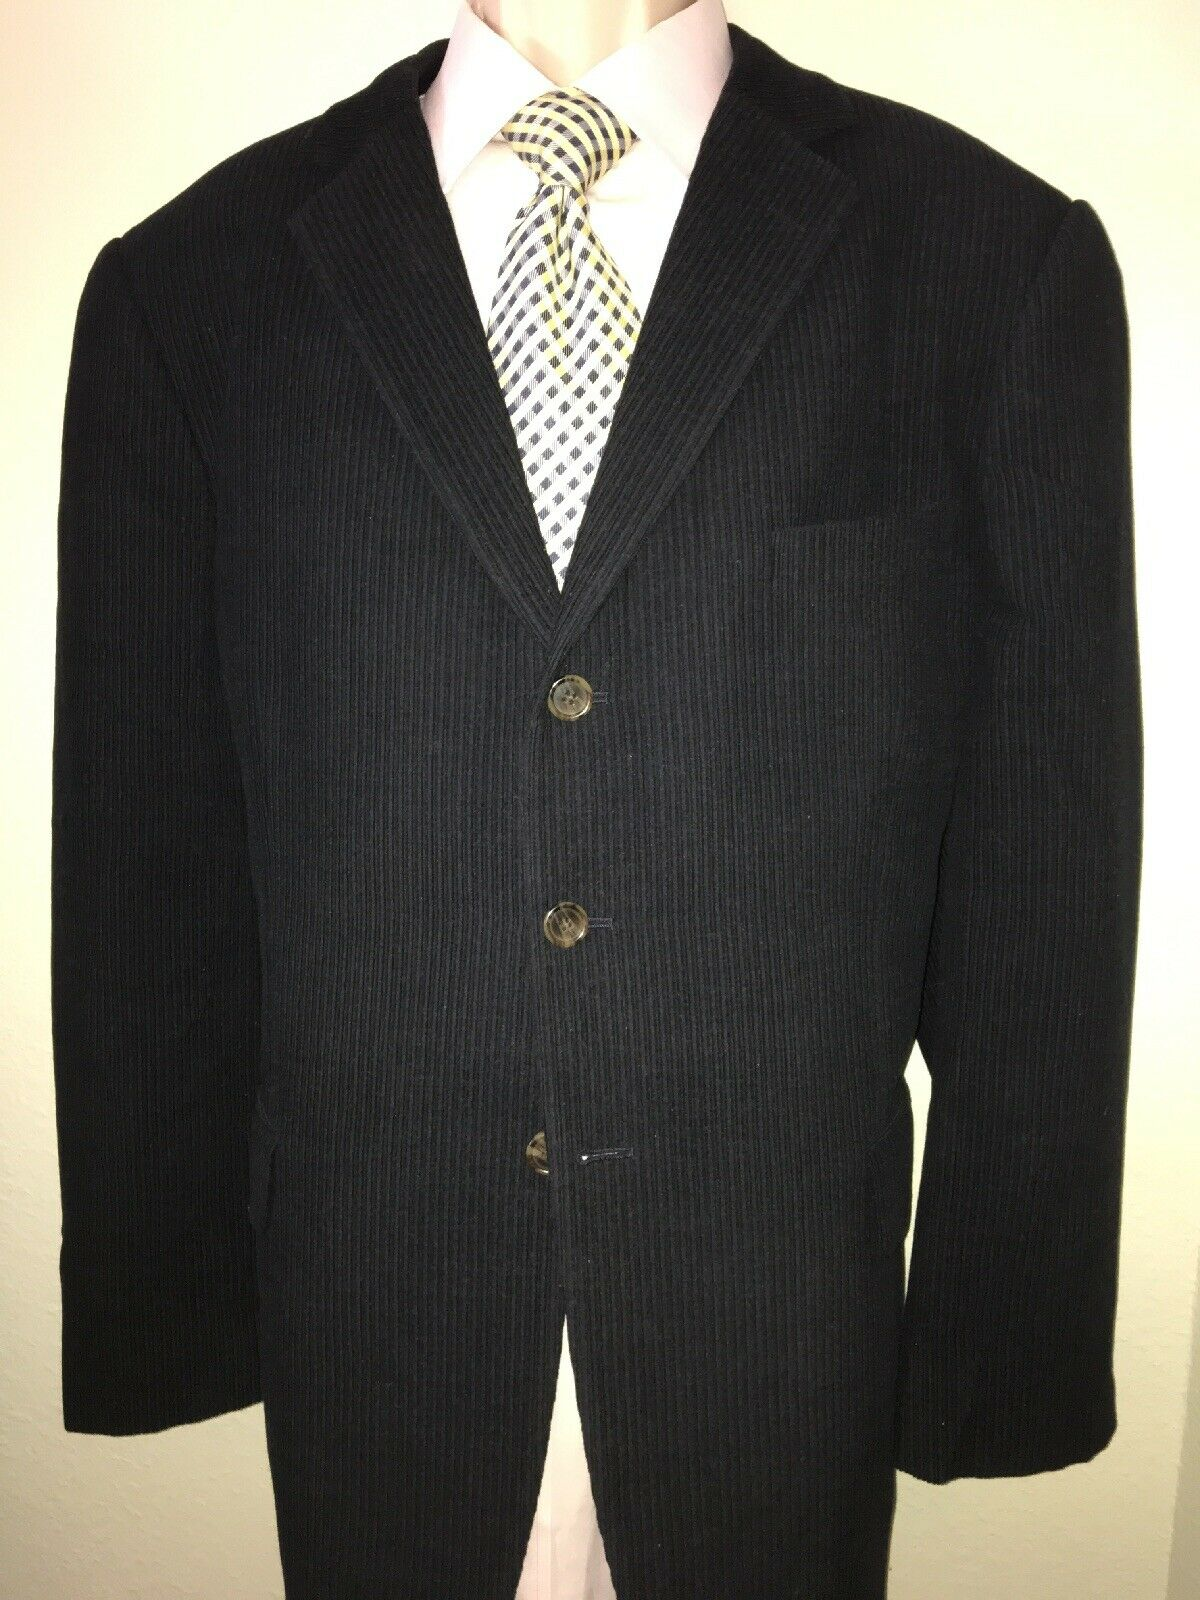 John W Nordstrom Lgold Piana Superfine Wool Navy bluee Double Vented Tail 48R